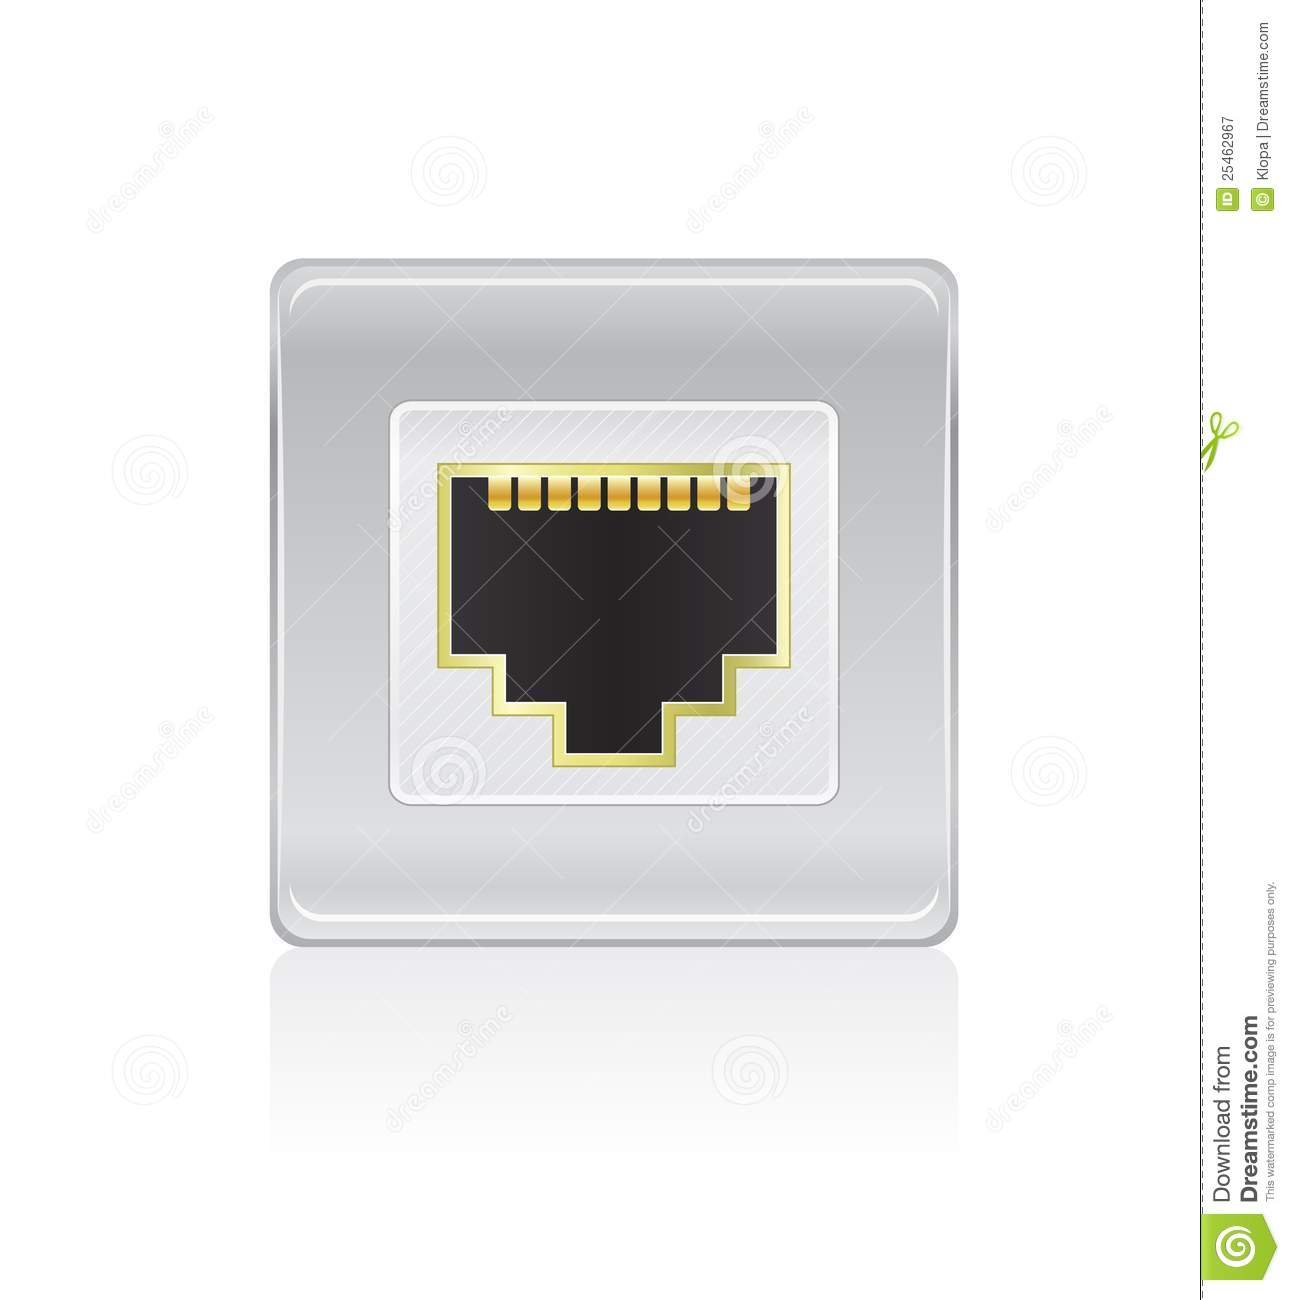 Port Network Shiny Network Port Icon Stock Vector Illustration Of Connect